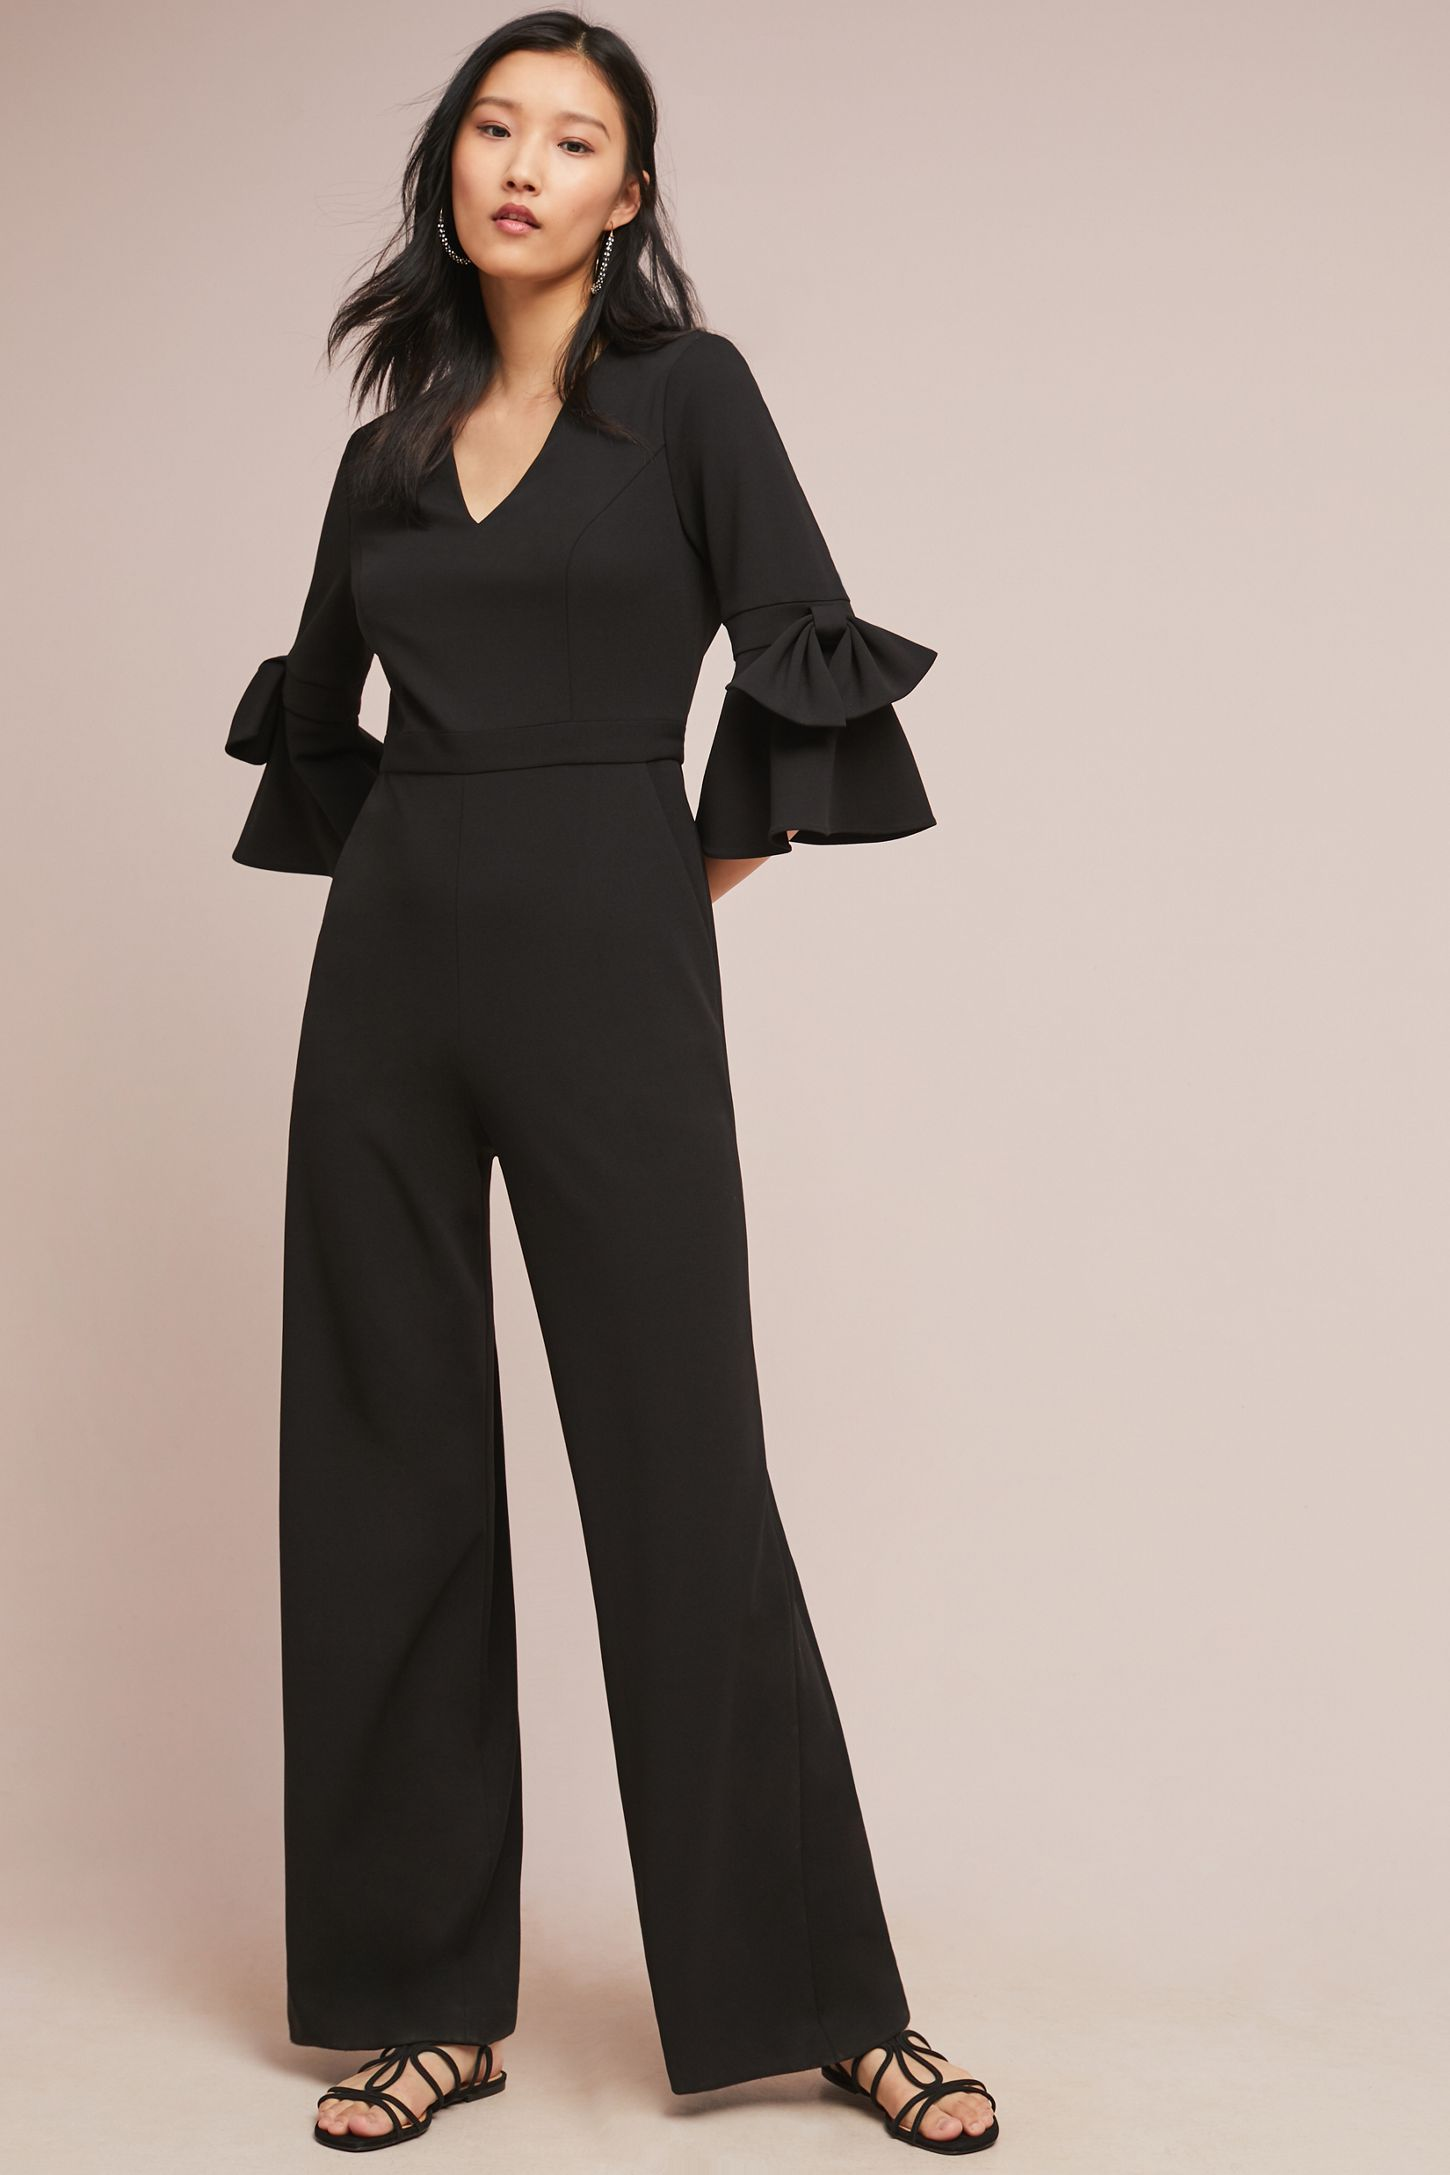 a4ad75dba6585 Donna Morgan Bell-Sleeved Jumpsuit. Tap image to zoom. Hover your mouse  over an image to zoom. Double Tap to Zoom